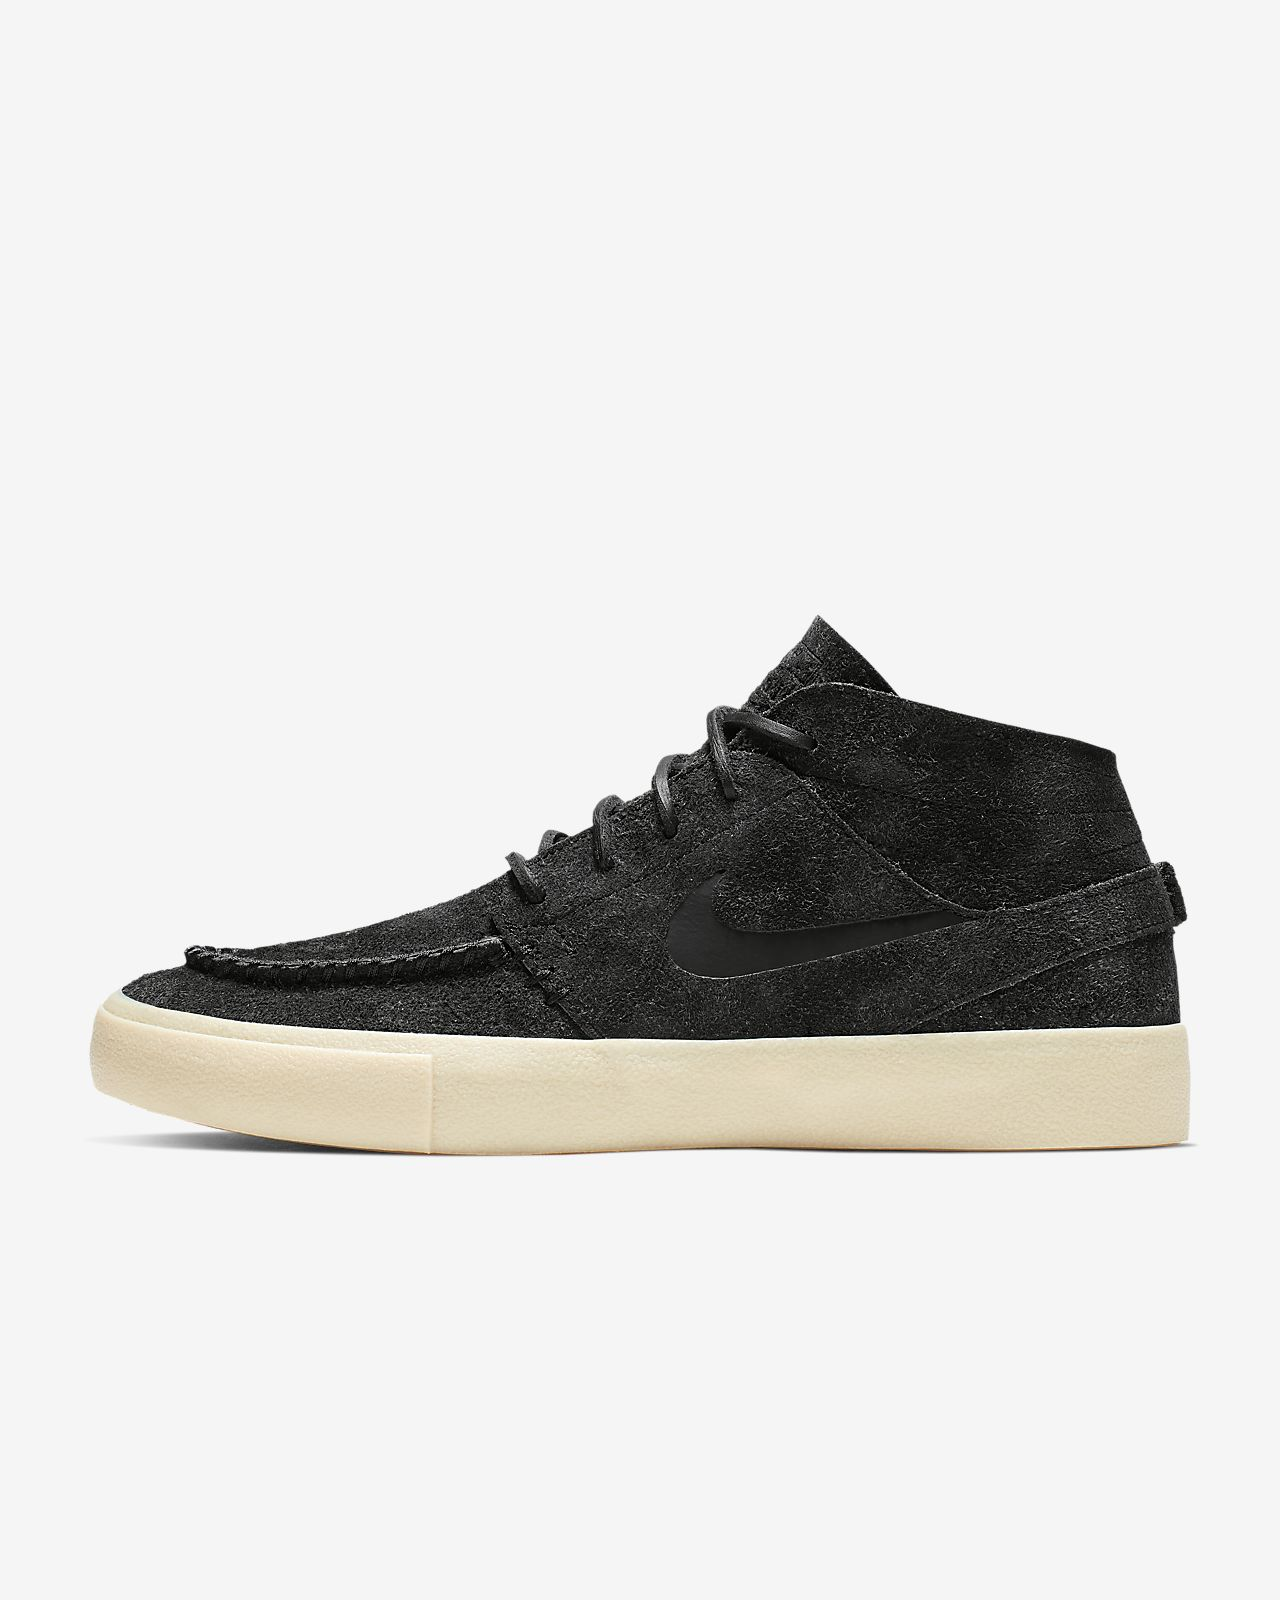 finest selection 5e468 cc047 ... Nike SB Zoom Janoski Mid Crafted Mens Skate Shoe